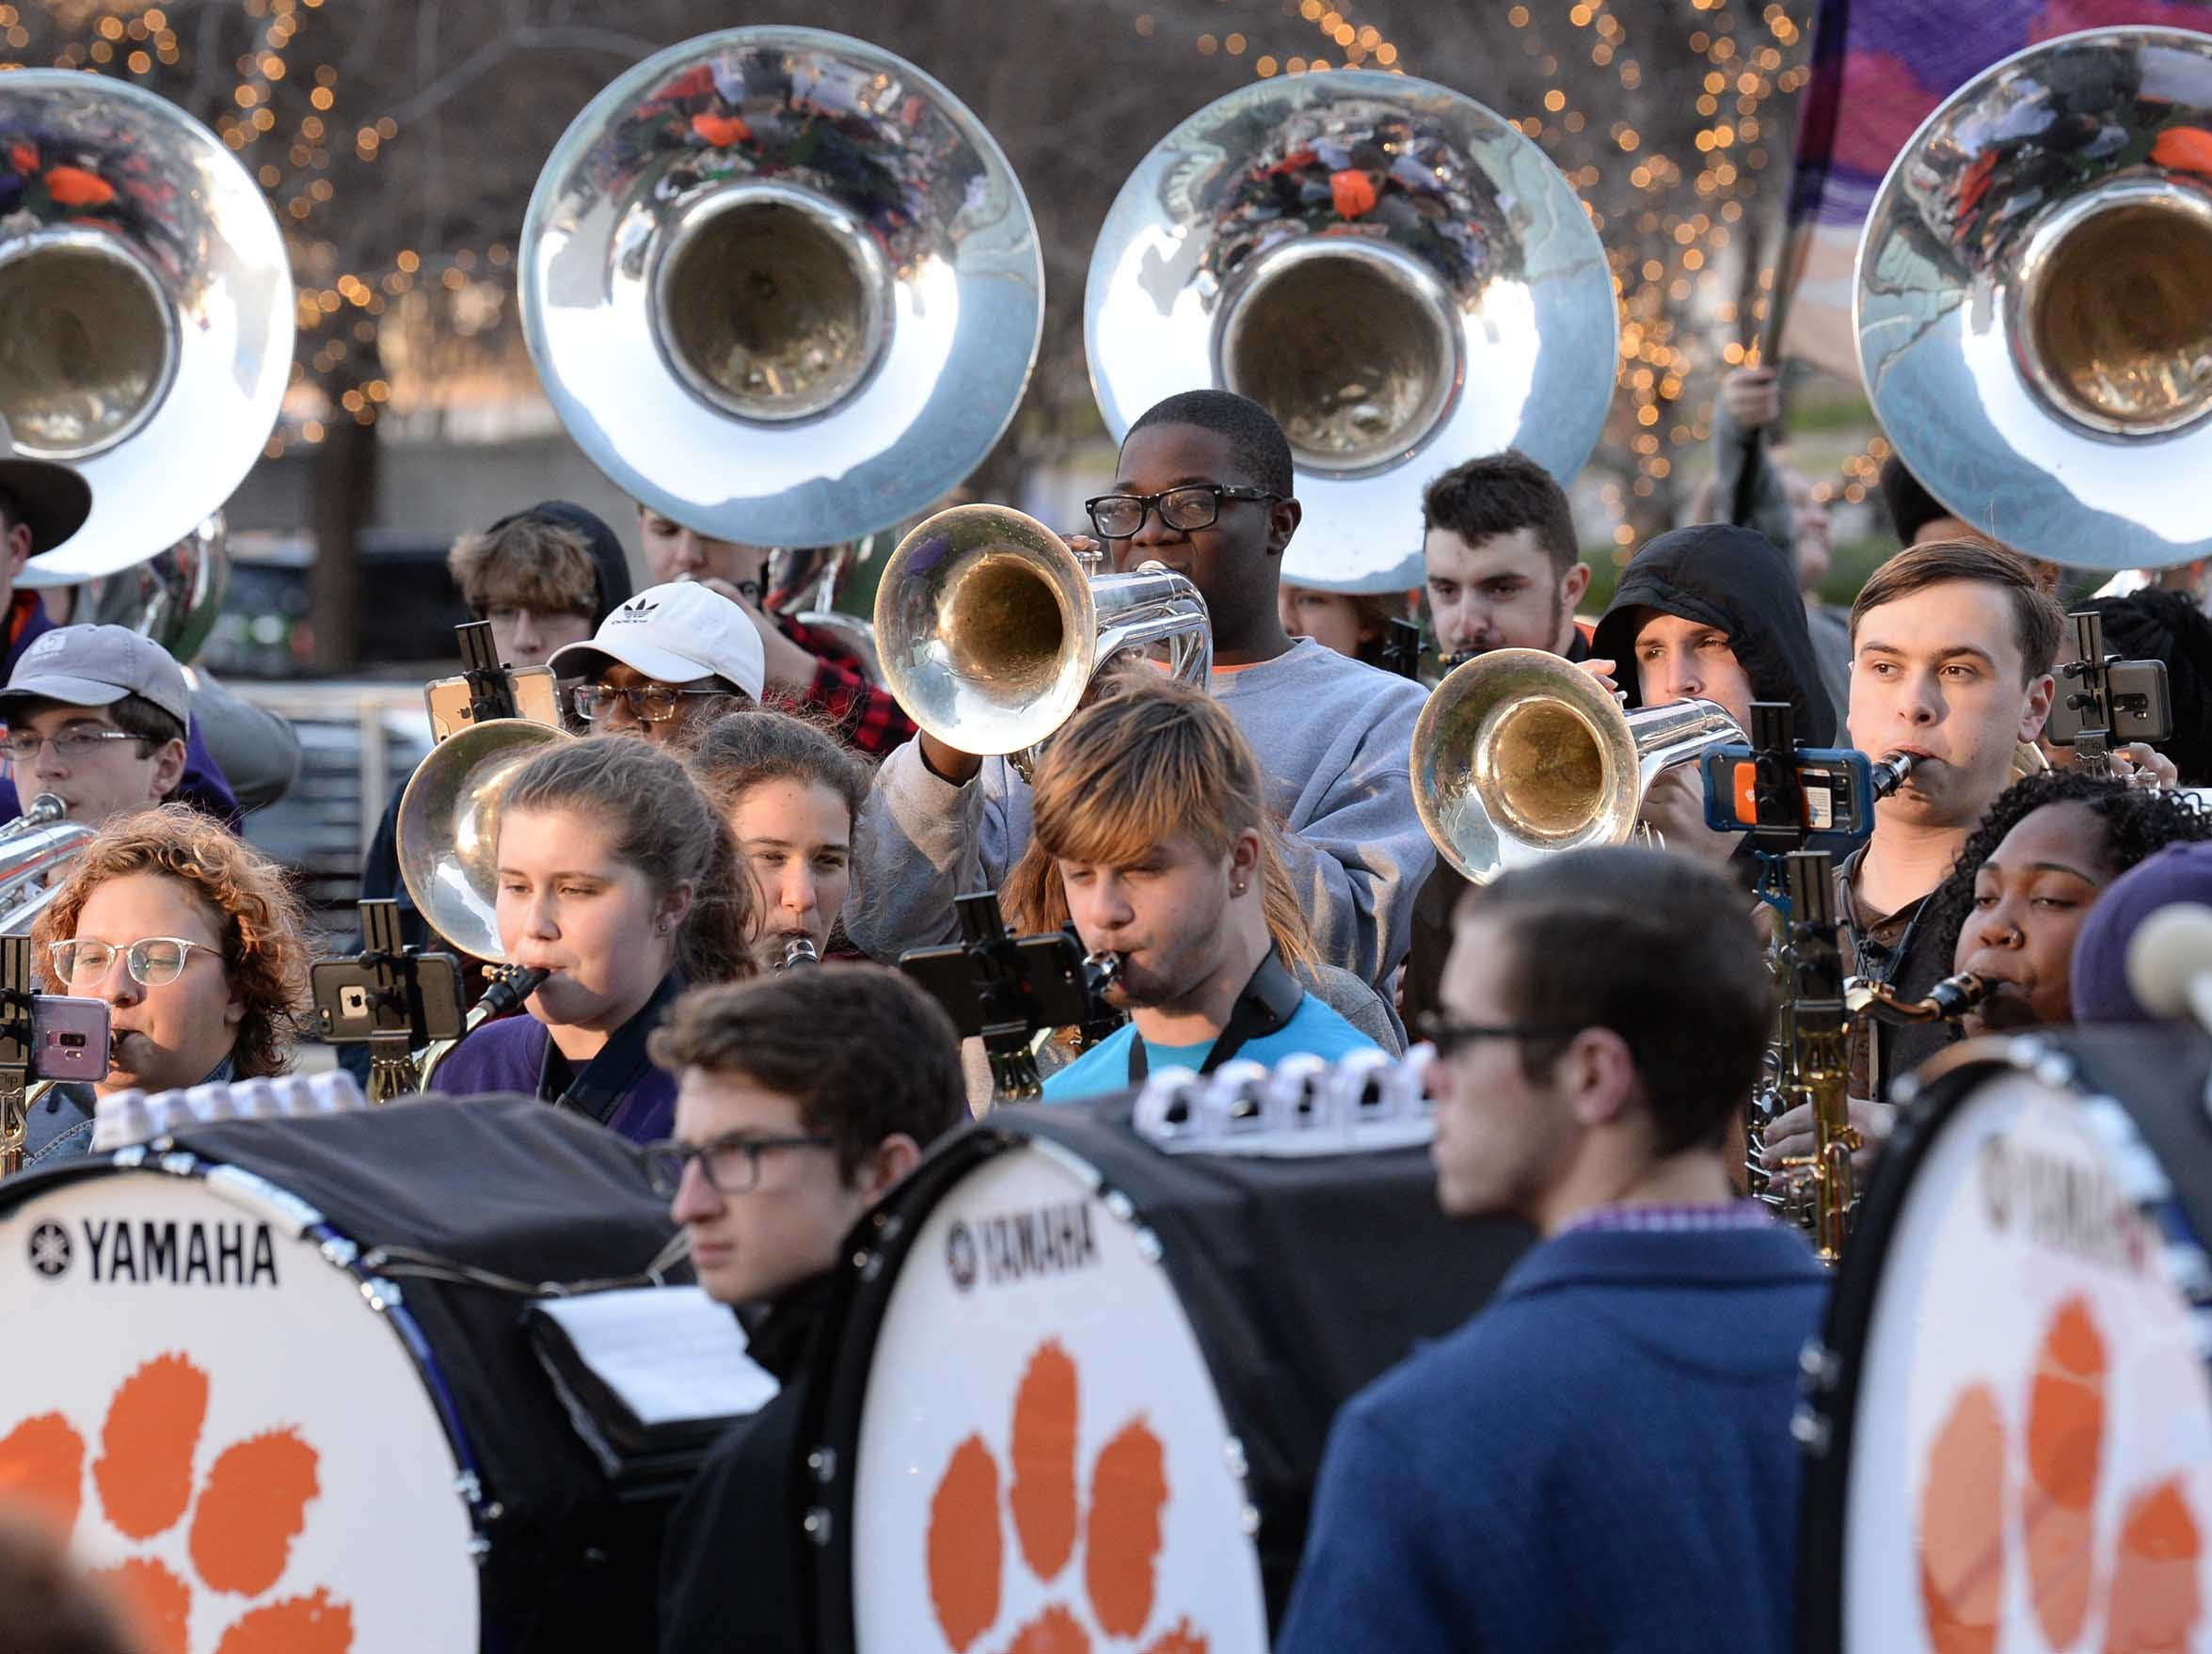 Clemson Band practice outside the Omni in Dallas December 27, 2018.